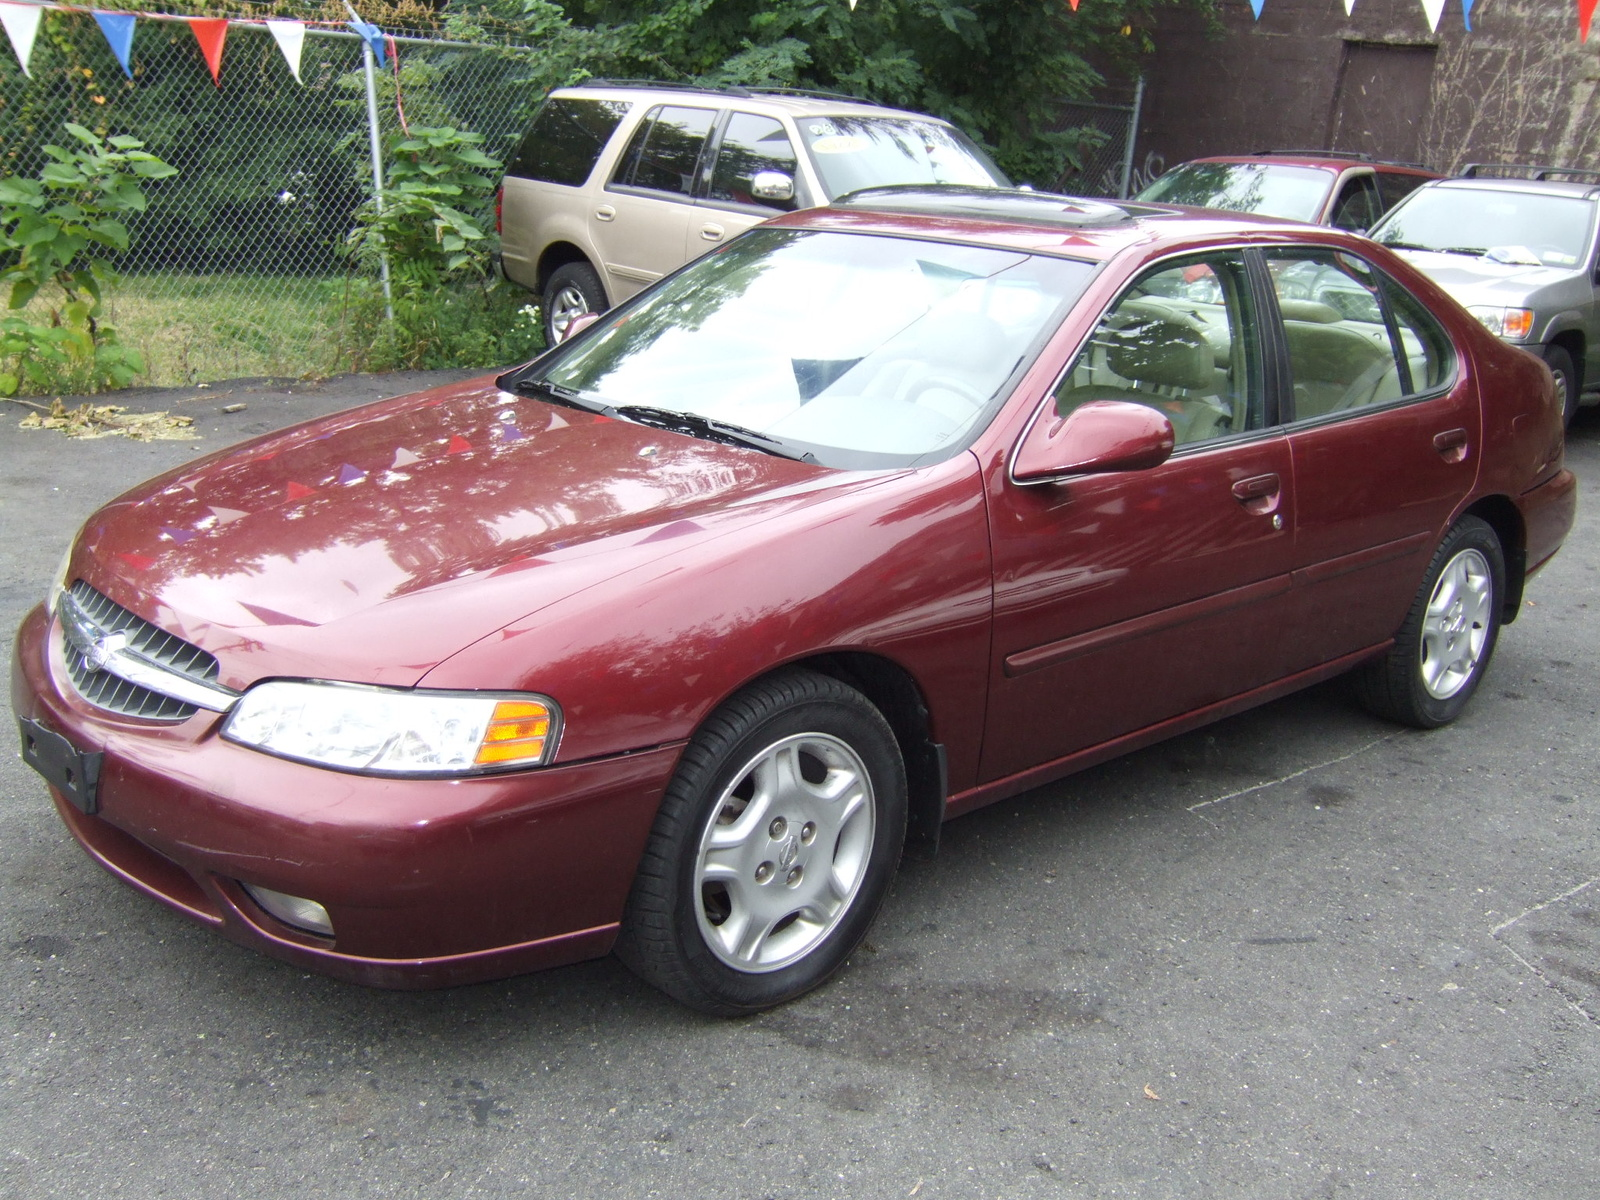 1999 Nissan Altima 4 Dr GLE Sedan picture